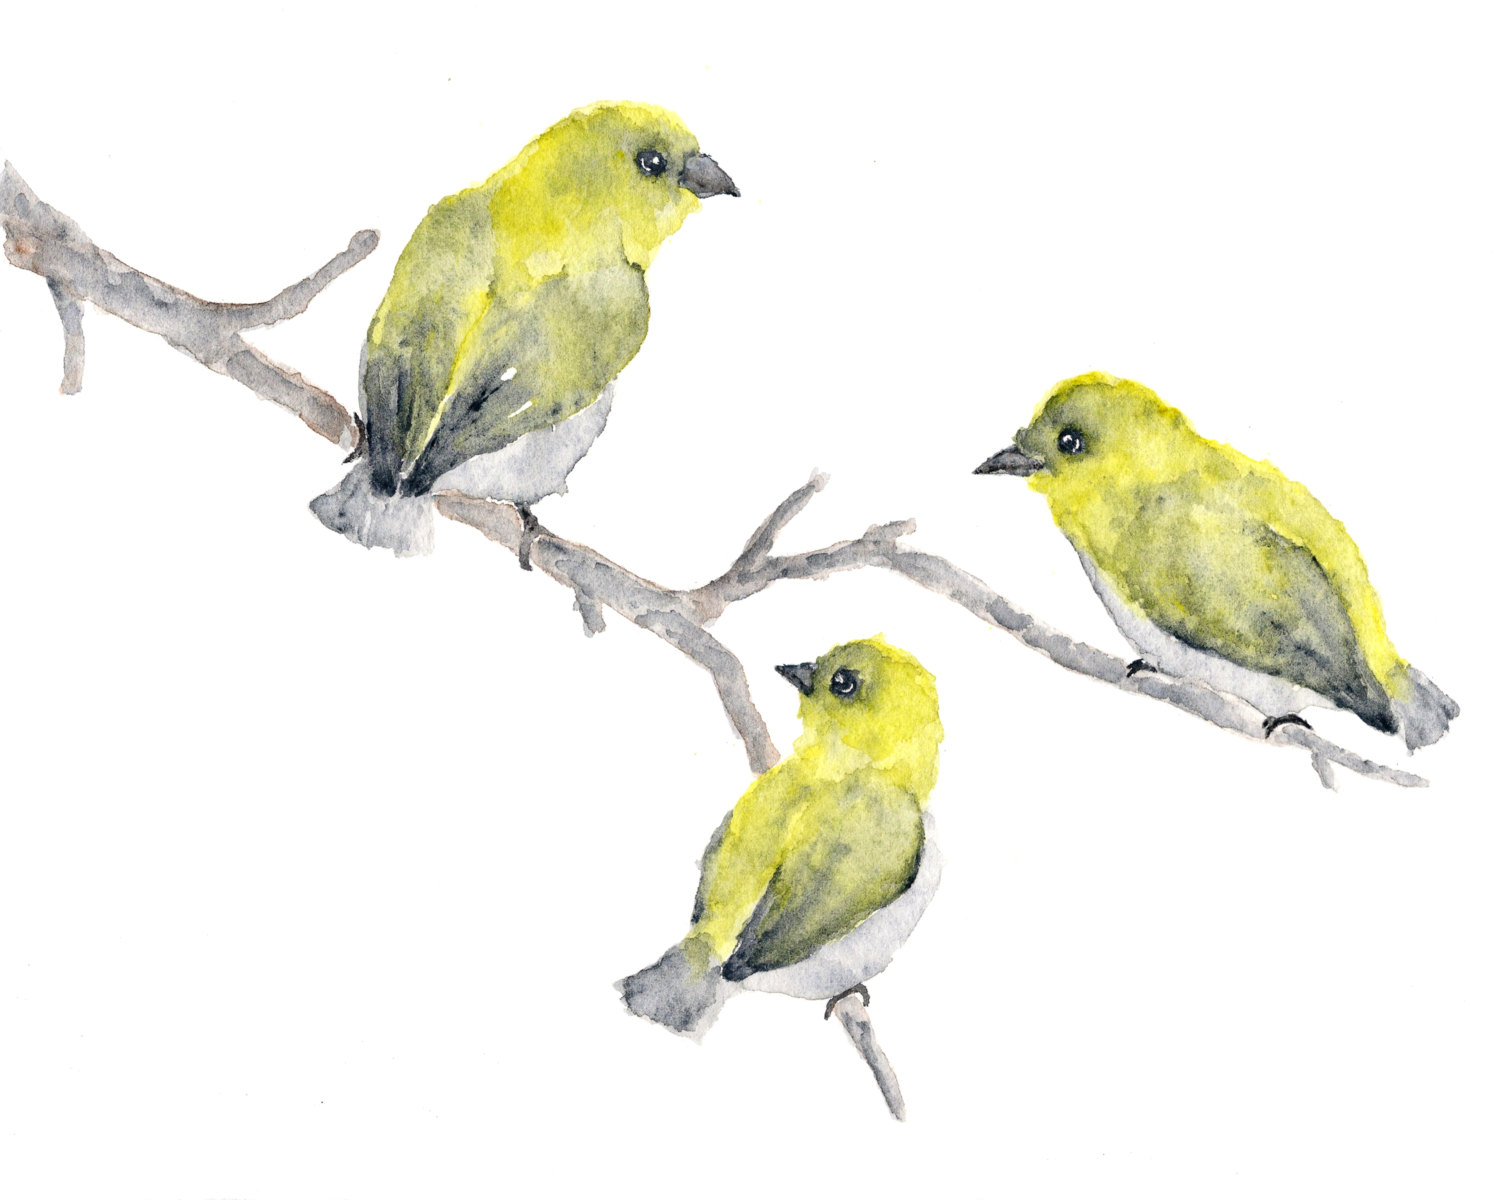 Drawn brds yellow finch Bird art nature painting abstract